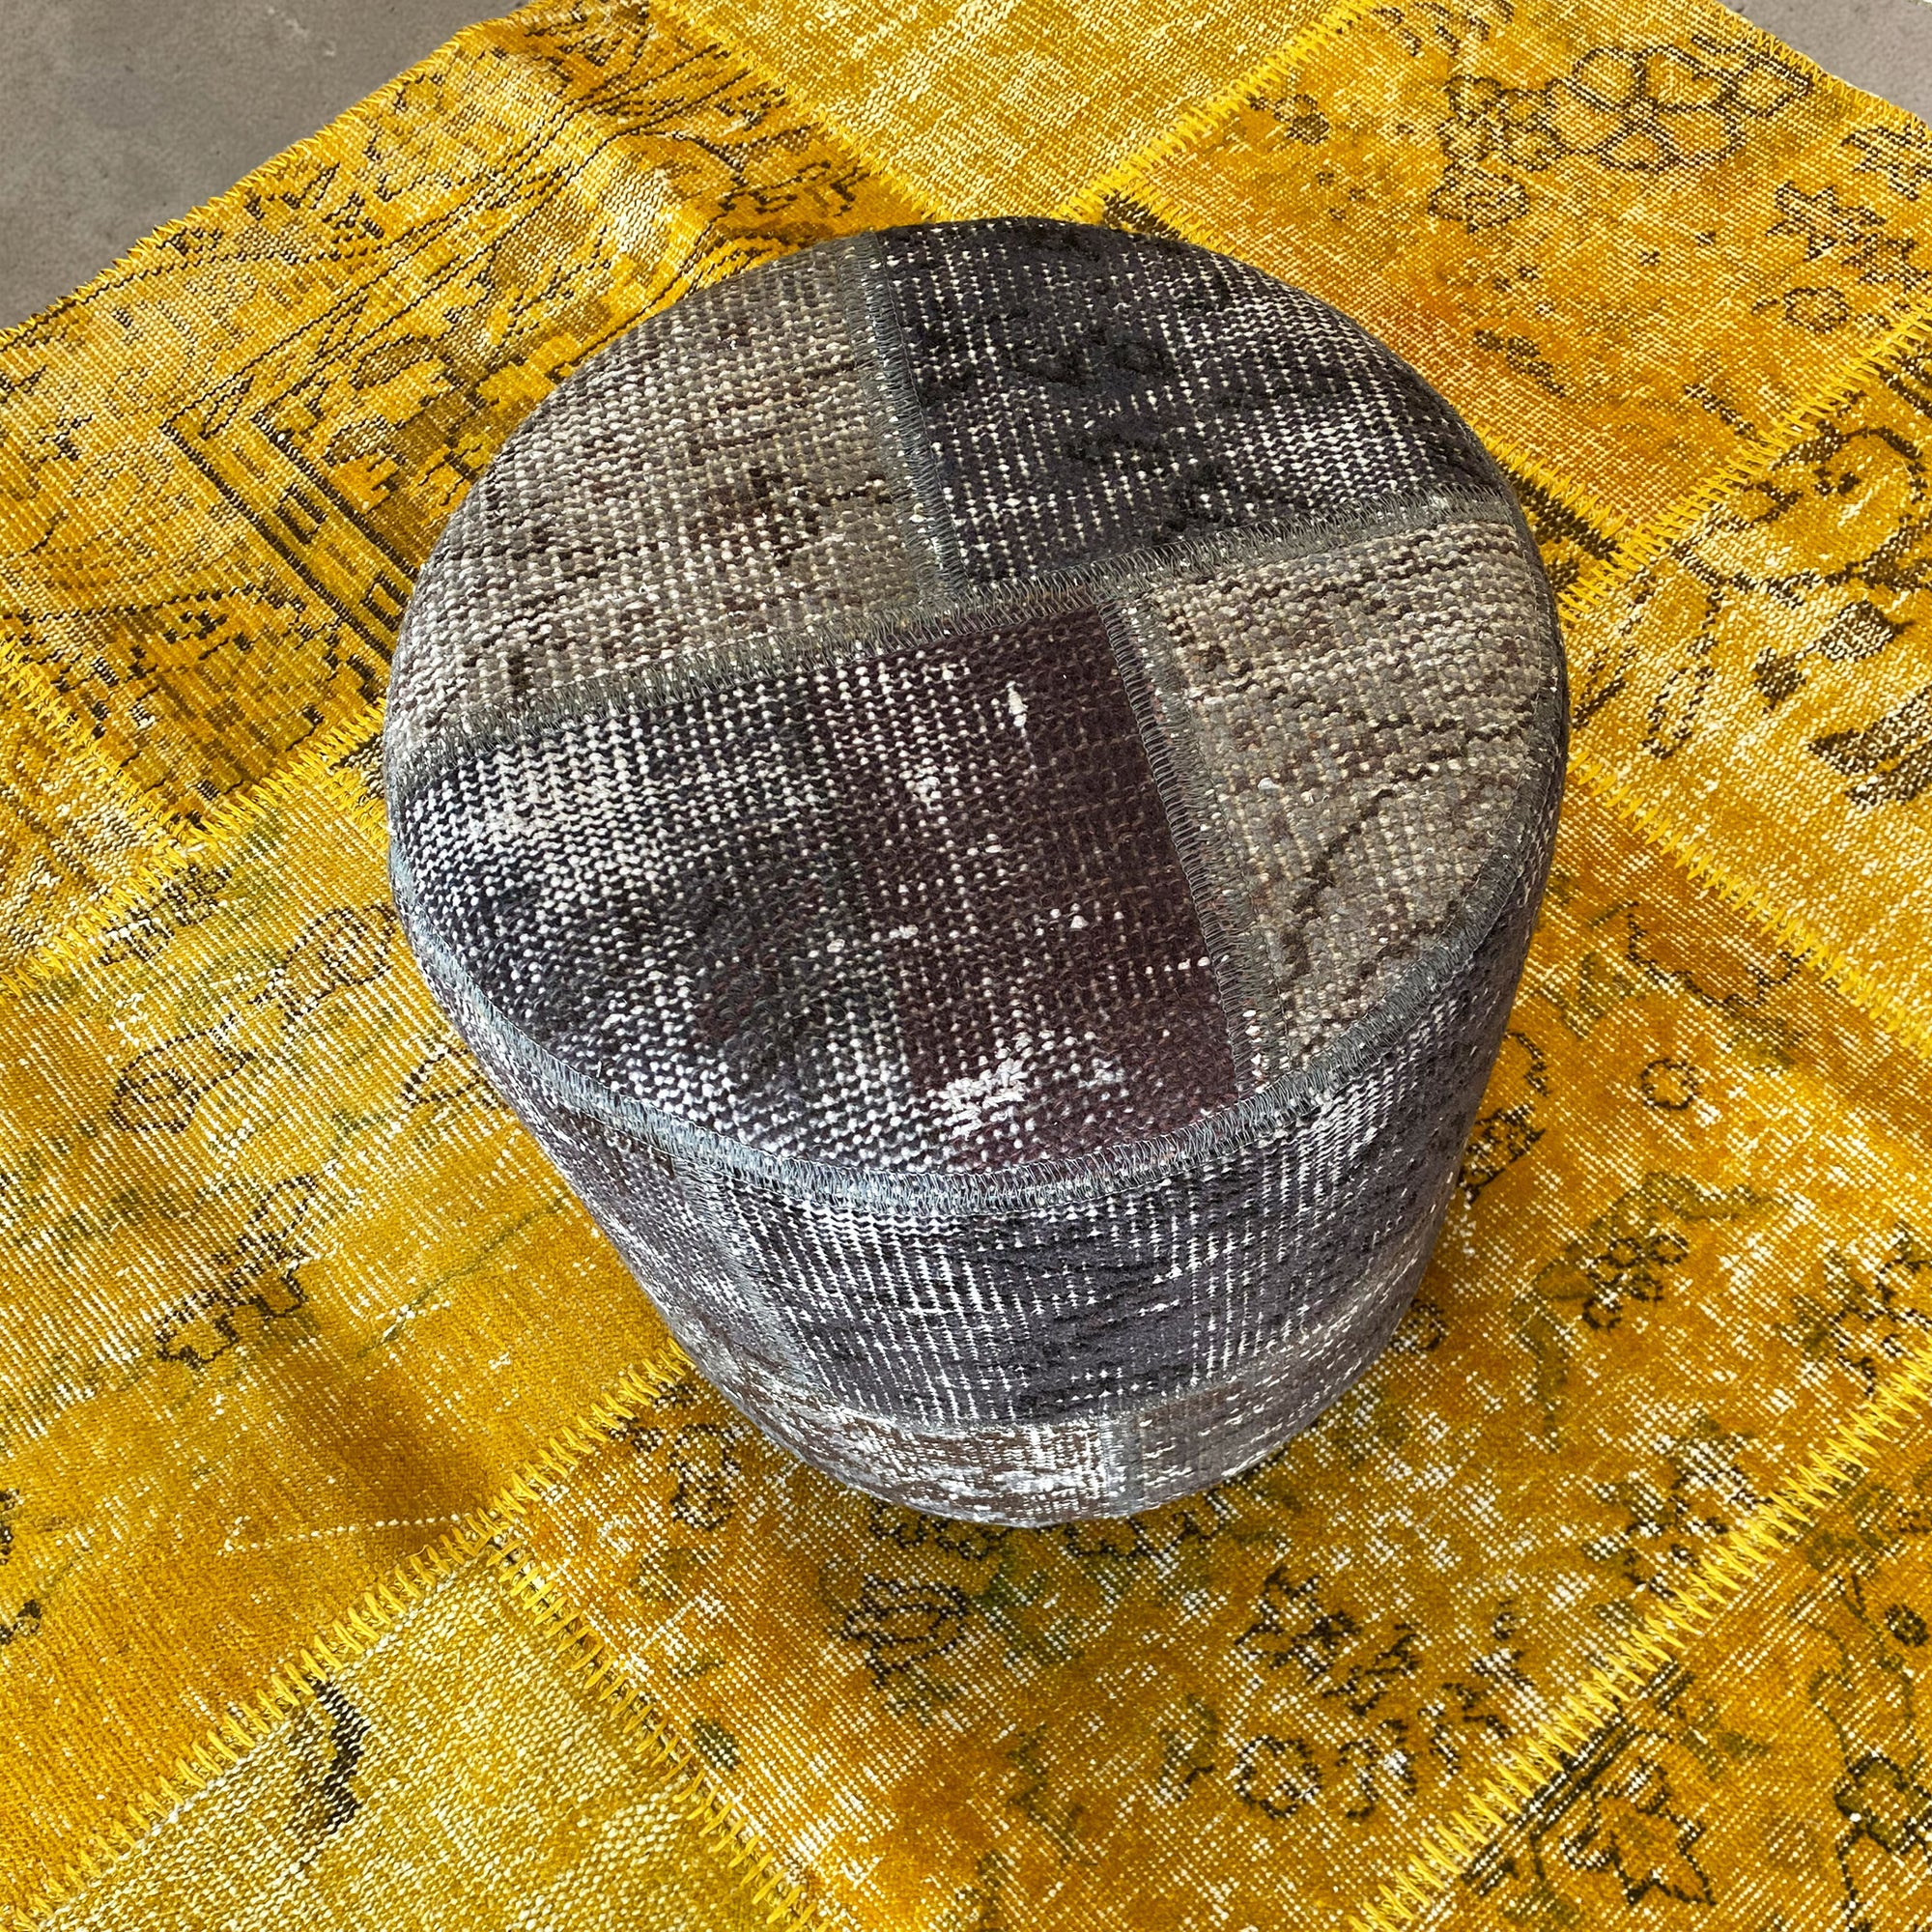 HALI X-Bursa Handmade over dyed Pouf GREY001 -  بوف بورصا صناعة يدوية فوق بوف مصبوغ باللون الرمادي - Shop Online Furniture and Home Decor Store in Dubai, UAE at ebarza